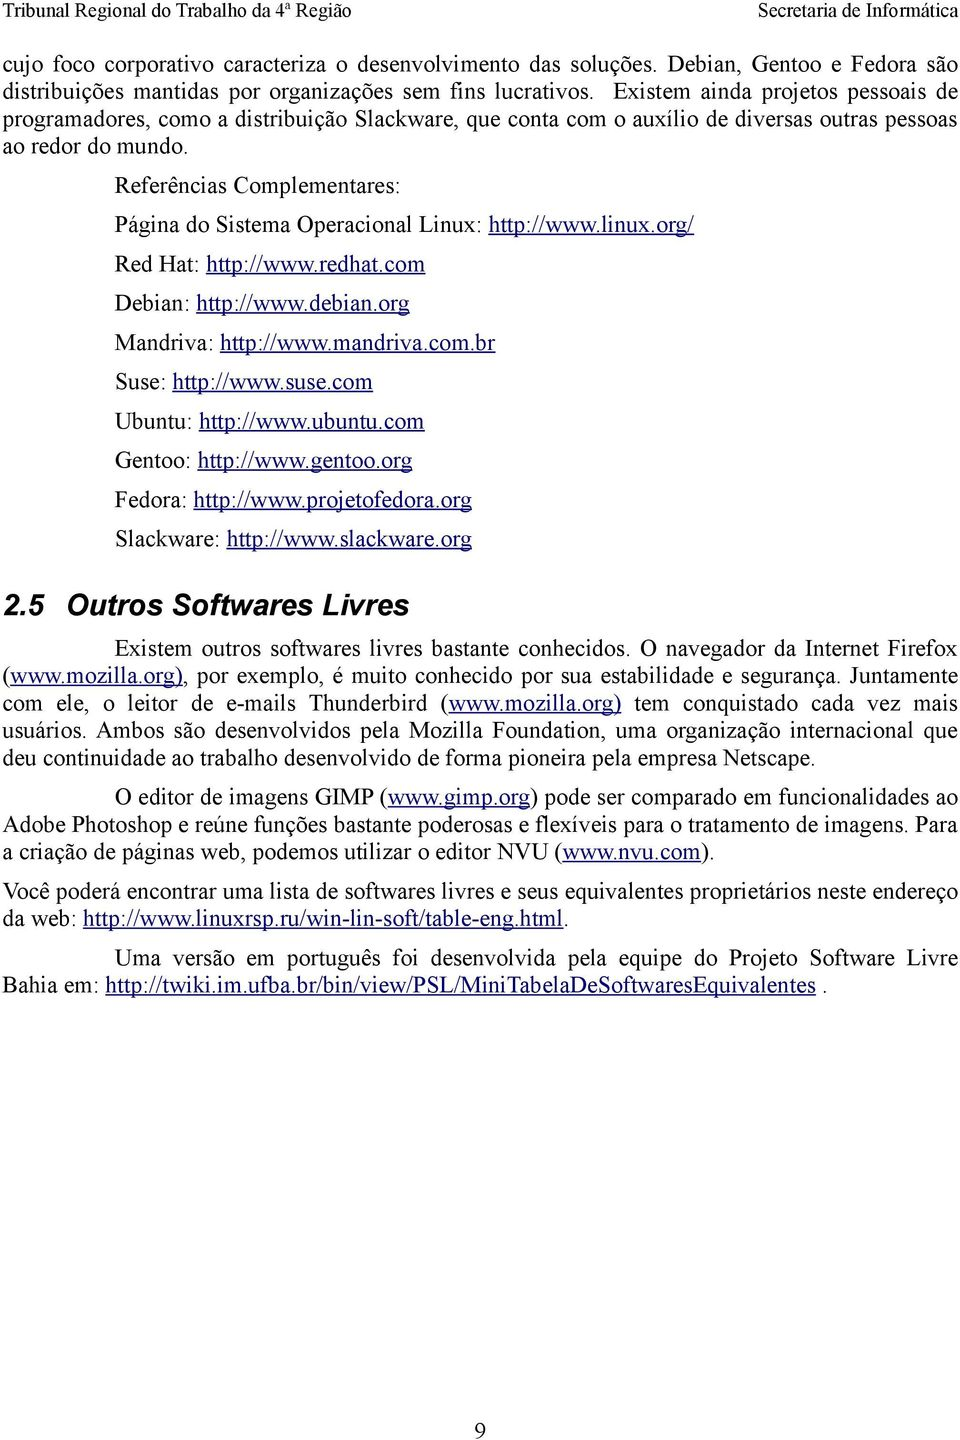 Referências Complementares: Página do Sistema Operacional Linux: http://www.linux.org/ Red Hat: http://www.redhat.com Debian: http://www.debian.org Mandriva: http://www.mandriva.com.br Suse: http://www.